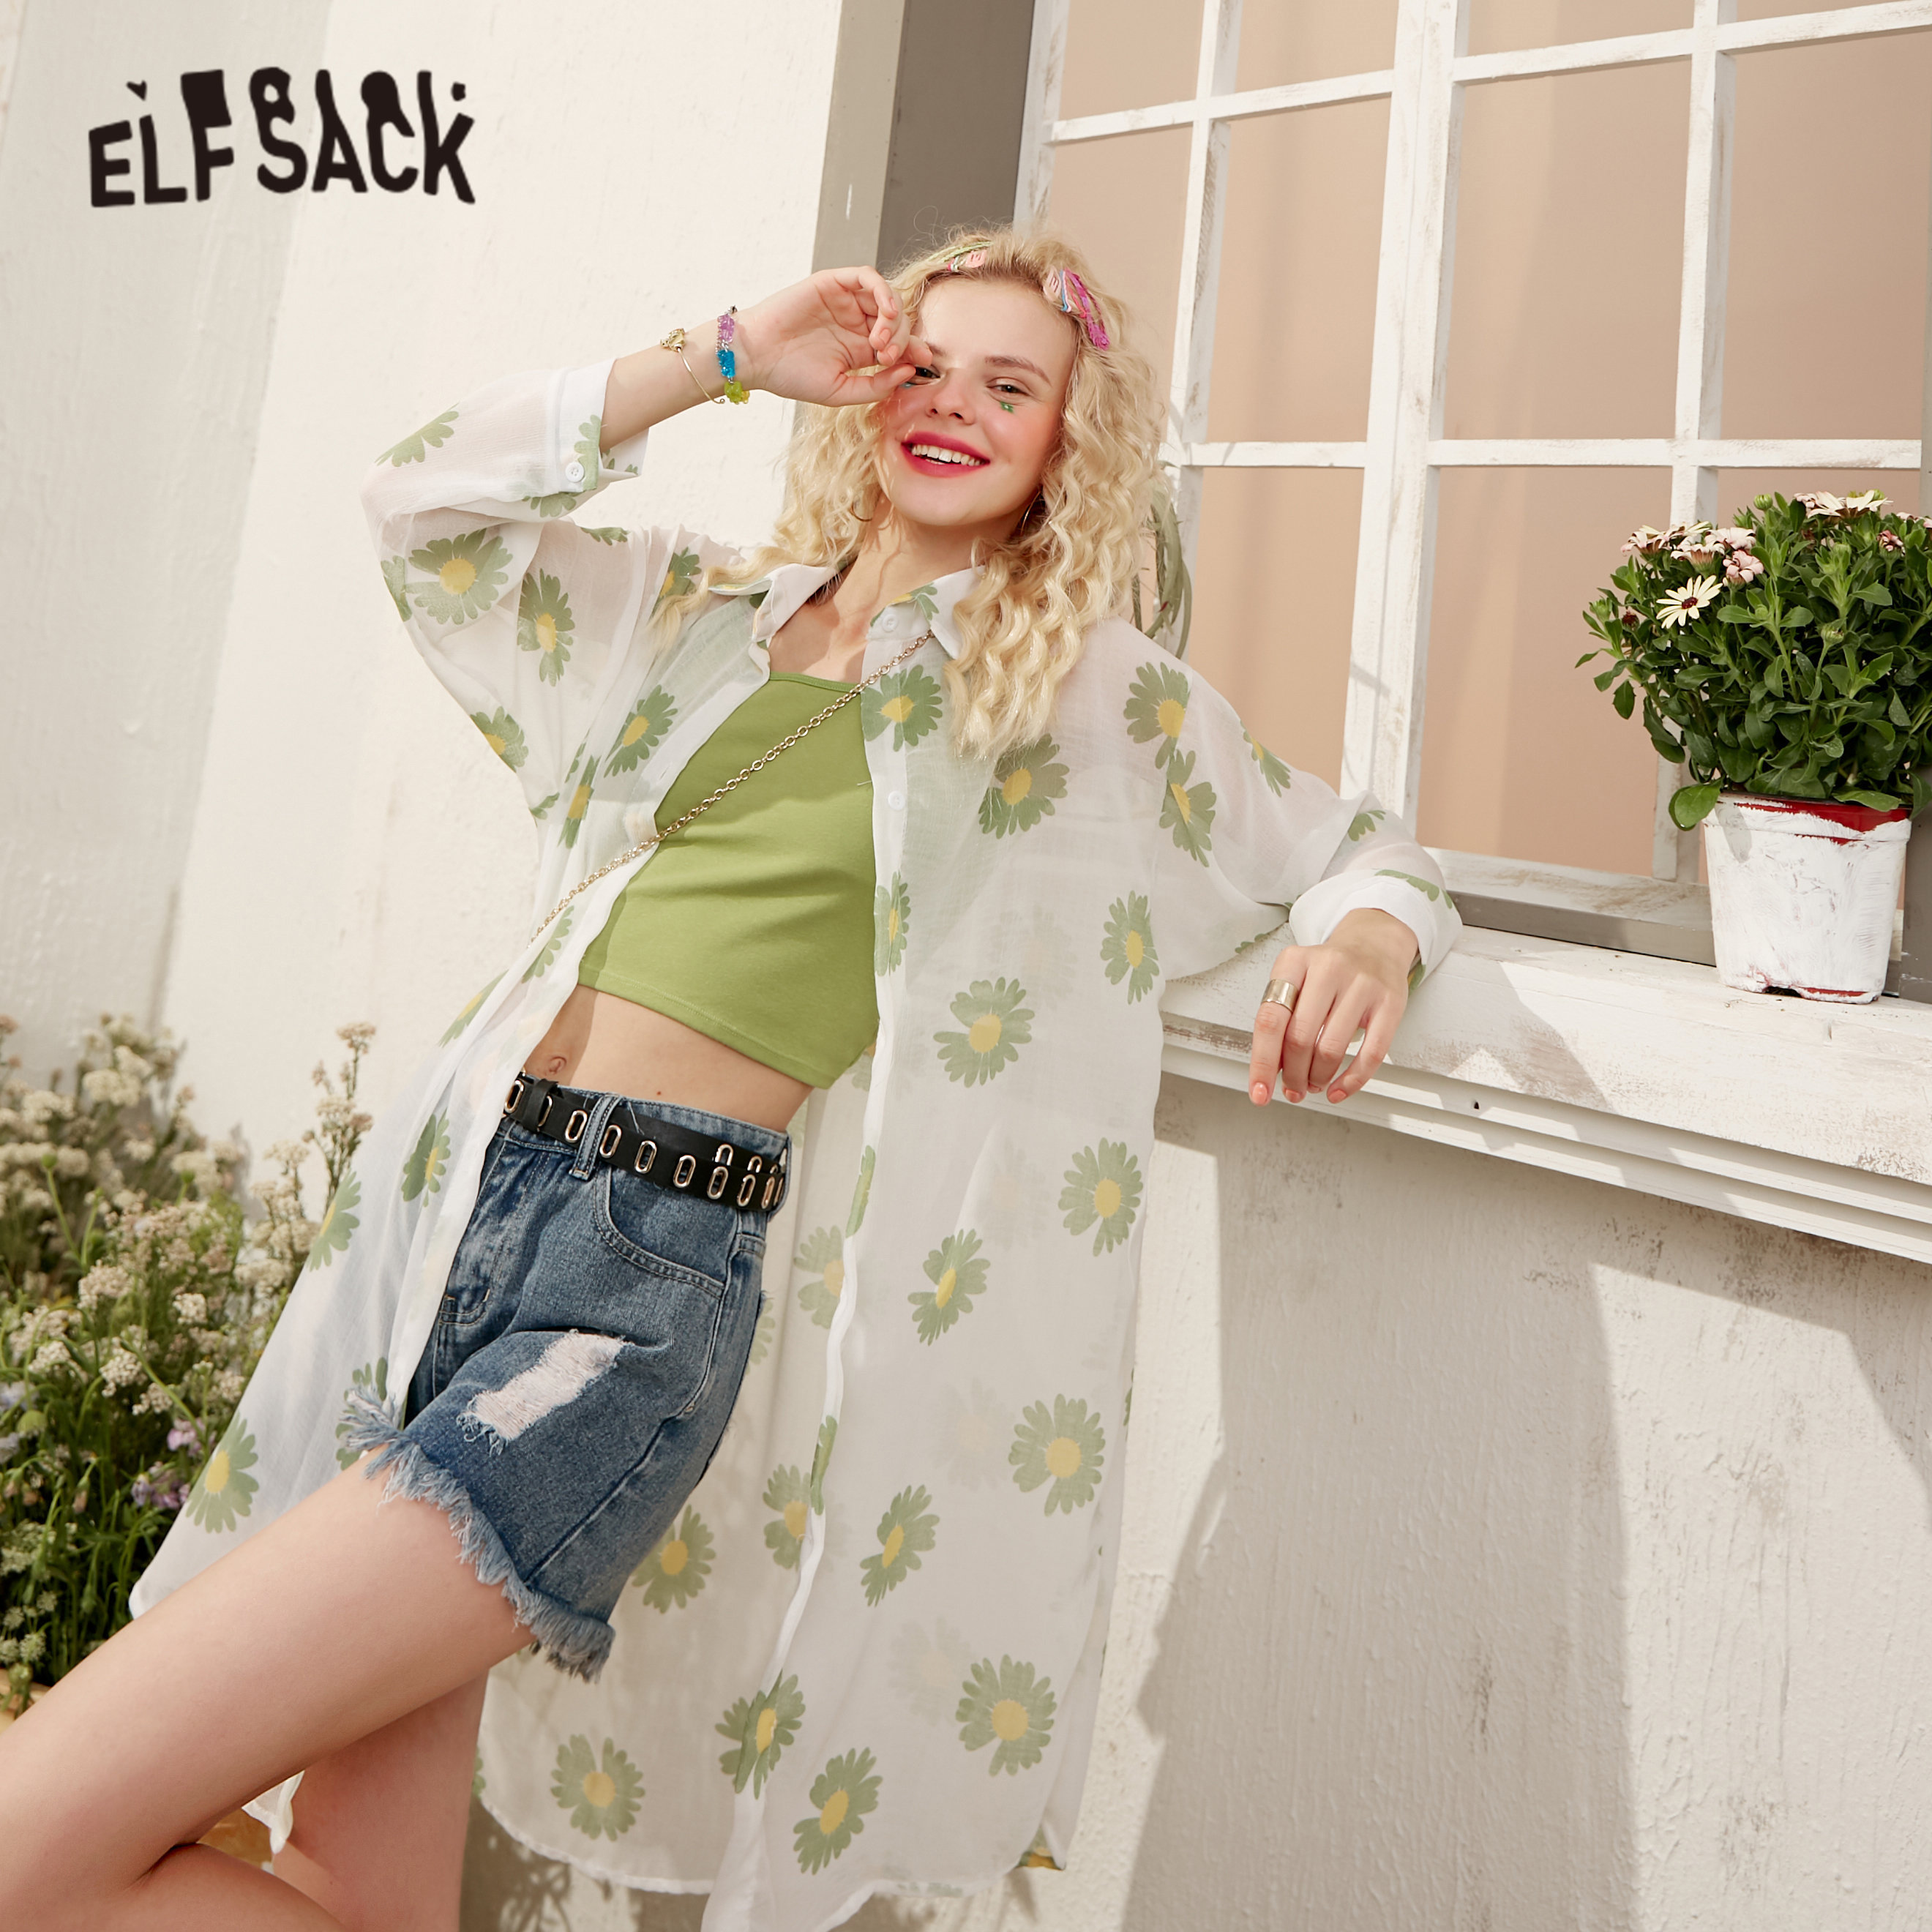 ELFSACK Green Daisy Flowers Casual See-Through Shirts Women 2020 Summer ELF Orange Long Sleeve Korean Ladeis Daily White Tops